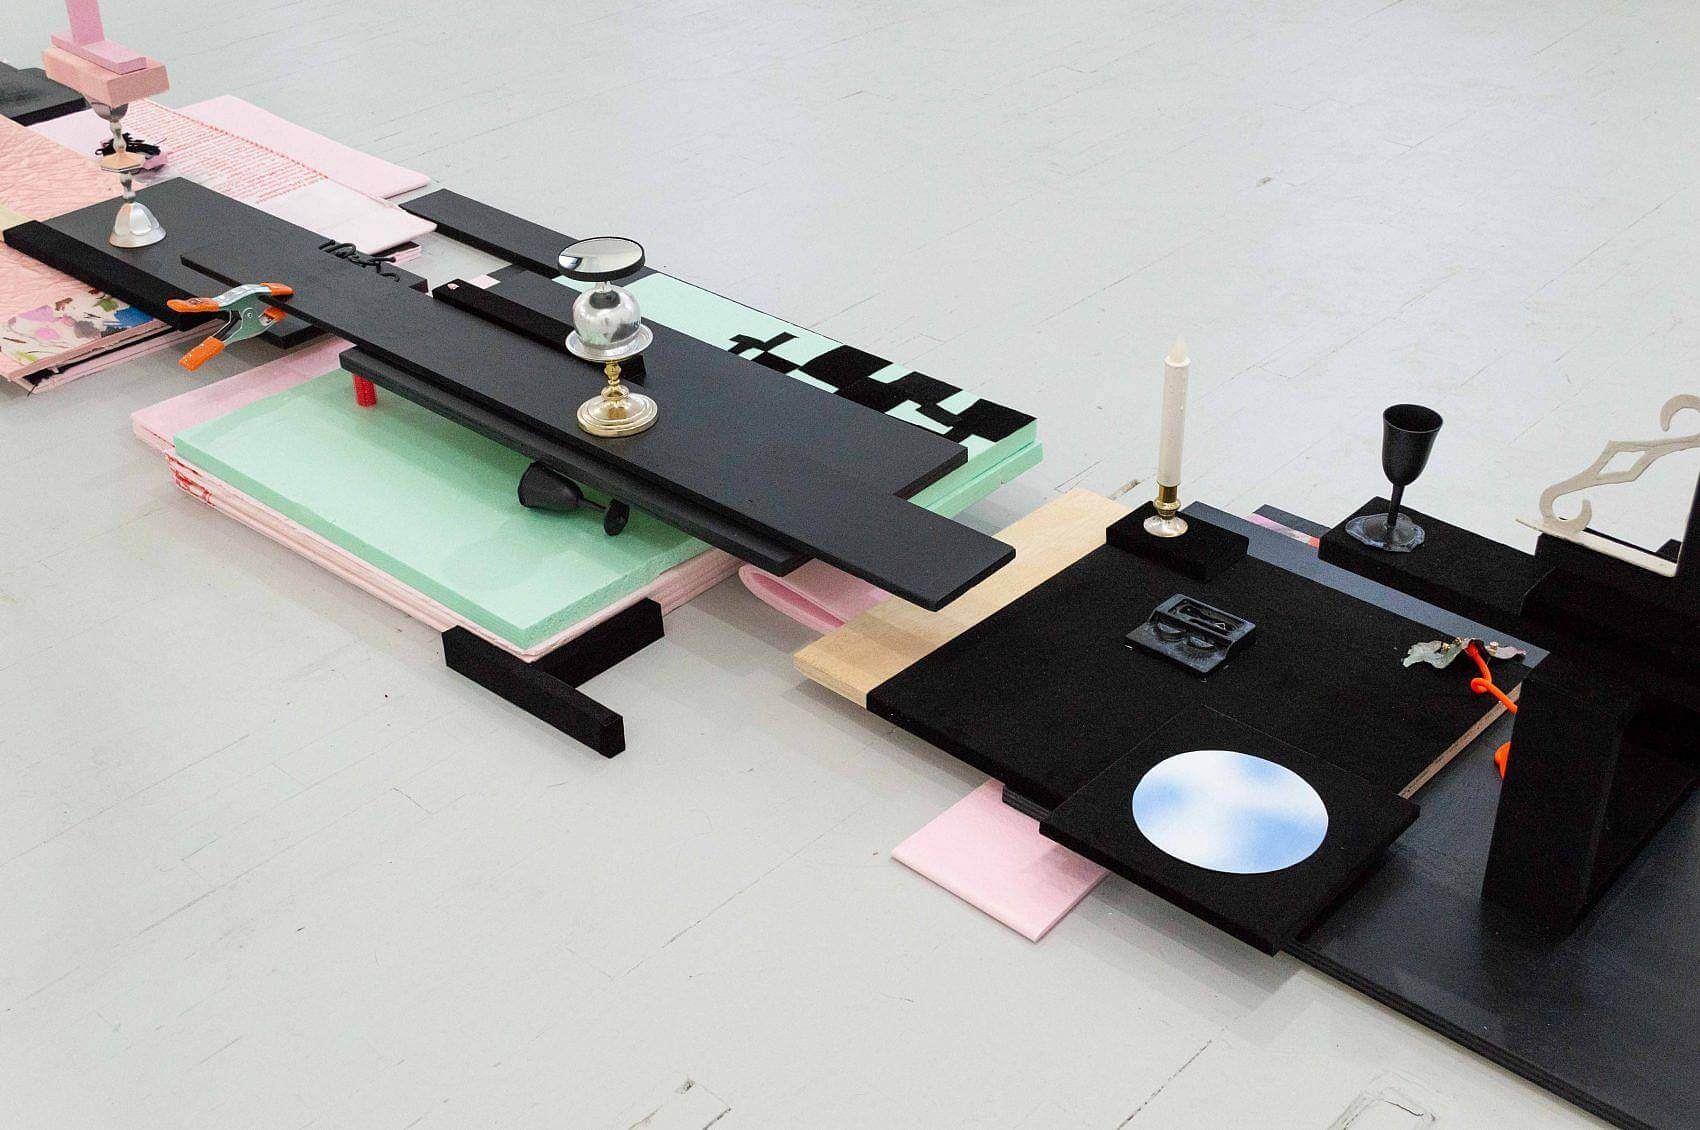 Stacked on the floor are pink, green, and black sheets of foam of various sizes. Arranged on top is an open contact mirror, an orange and silver clamp, two small black wine glasses, an electric candle, and a florescent orange cord. Also arranged on the foam is an irregular grid made from pieces of black velvet and a circle of sky blue with white clouds.